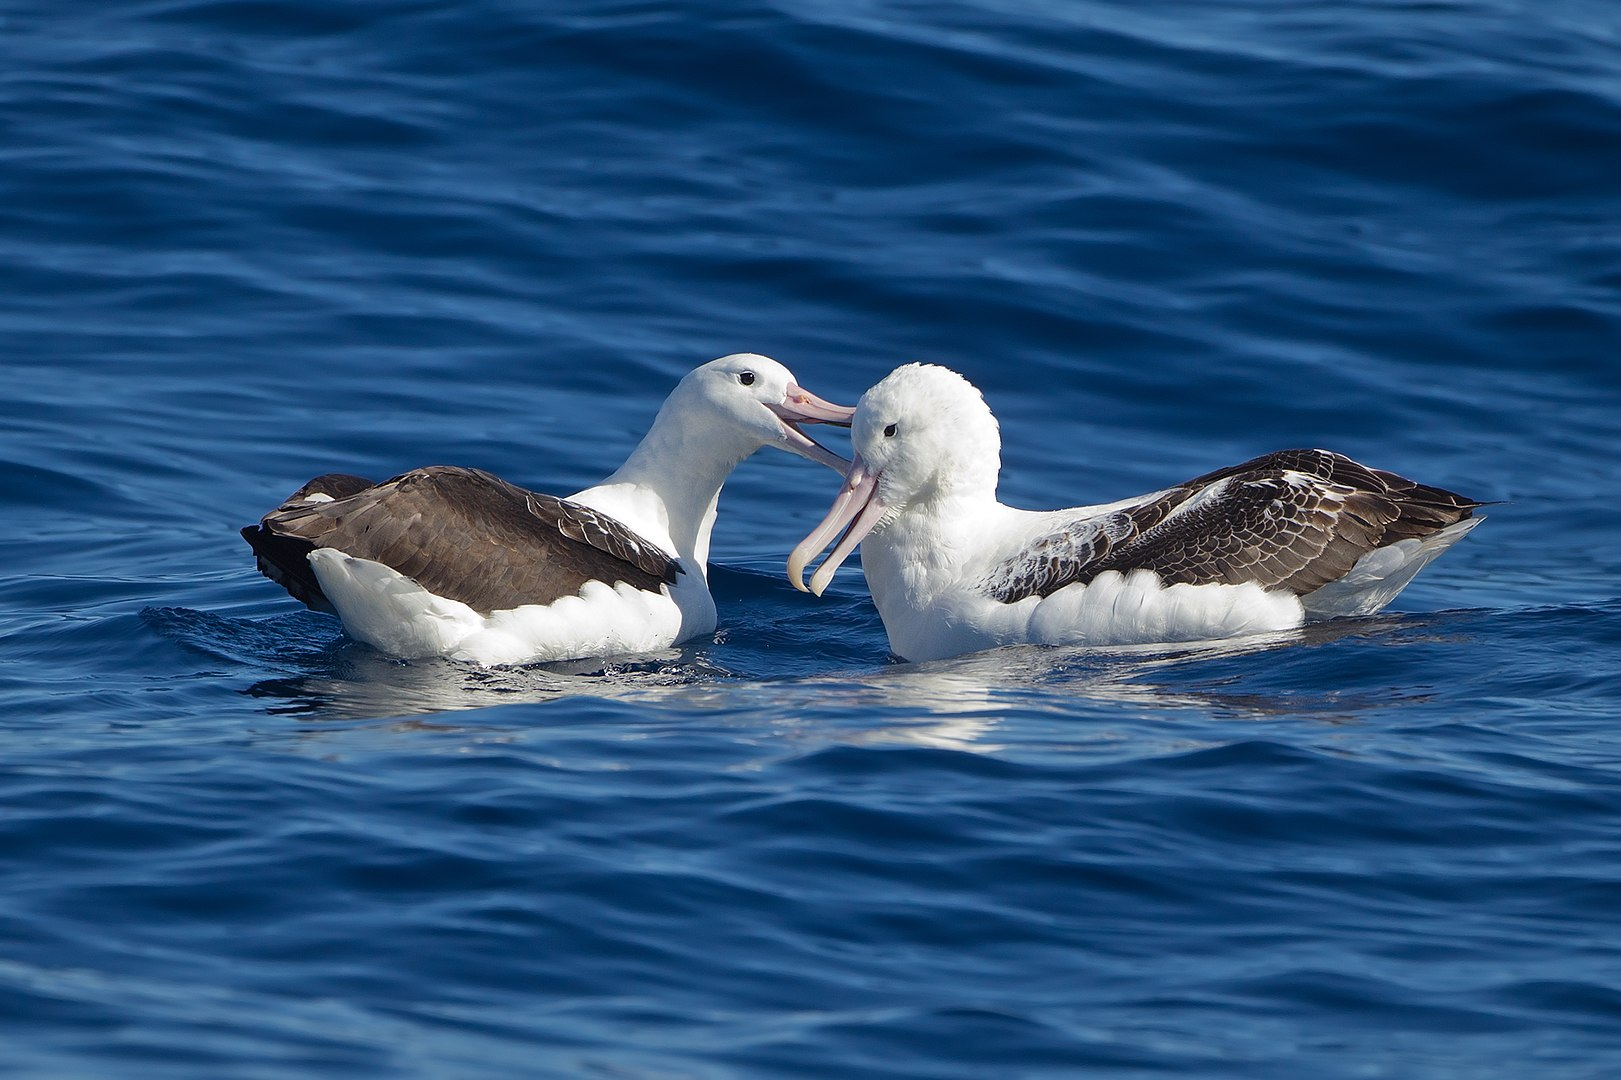 'Earth' Our home too : Albatross